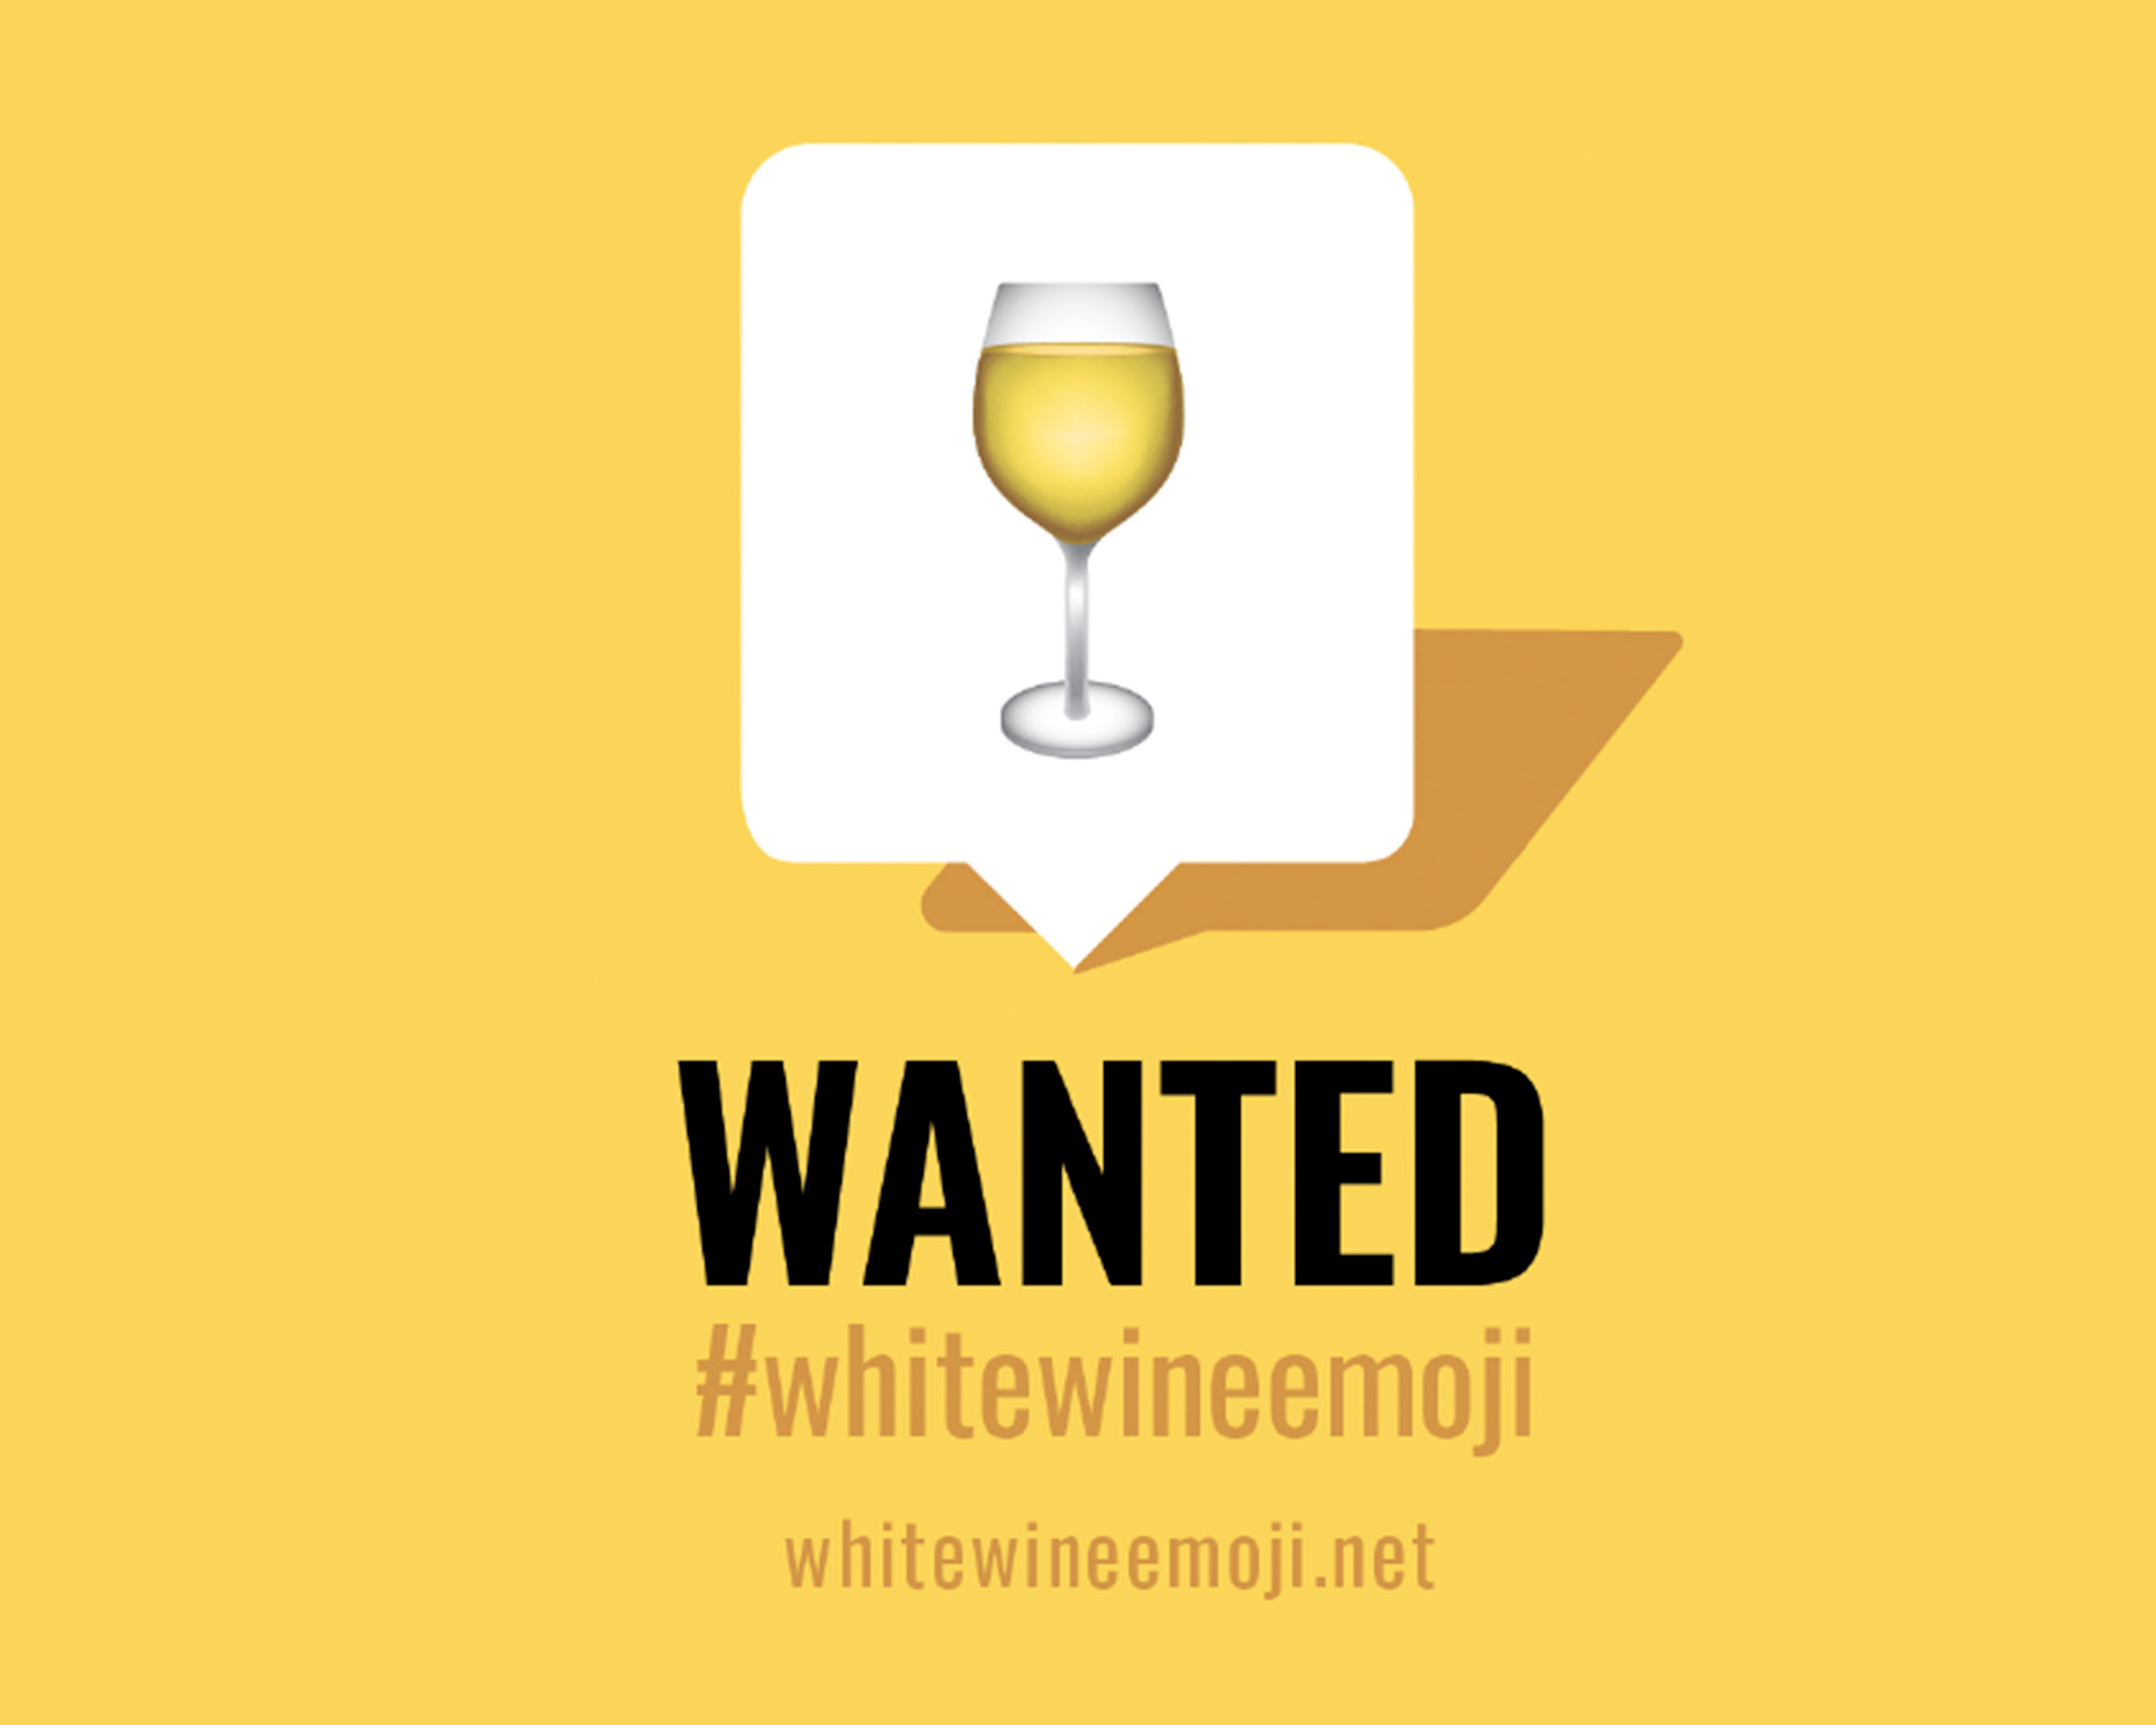 Fetzer Raises Its Glass to the Global Campaign for a #WhiteWineEmoji, brought to life with eye-catching